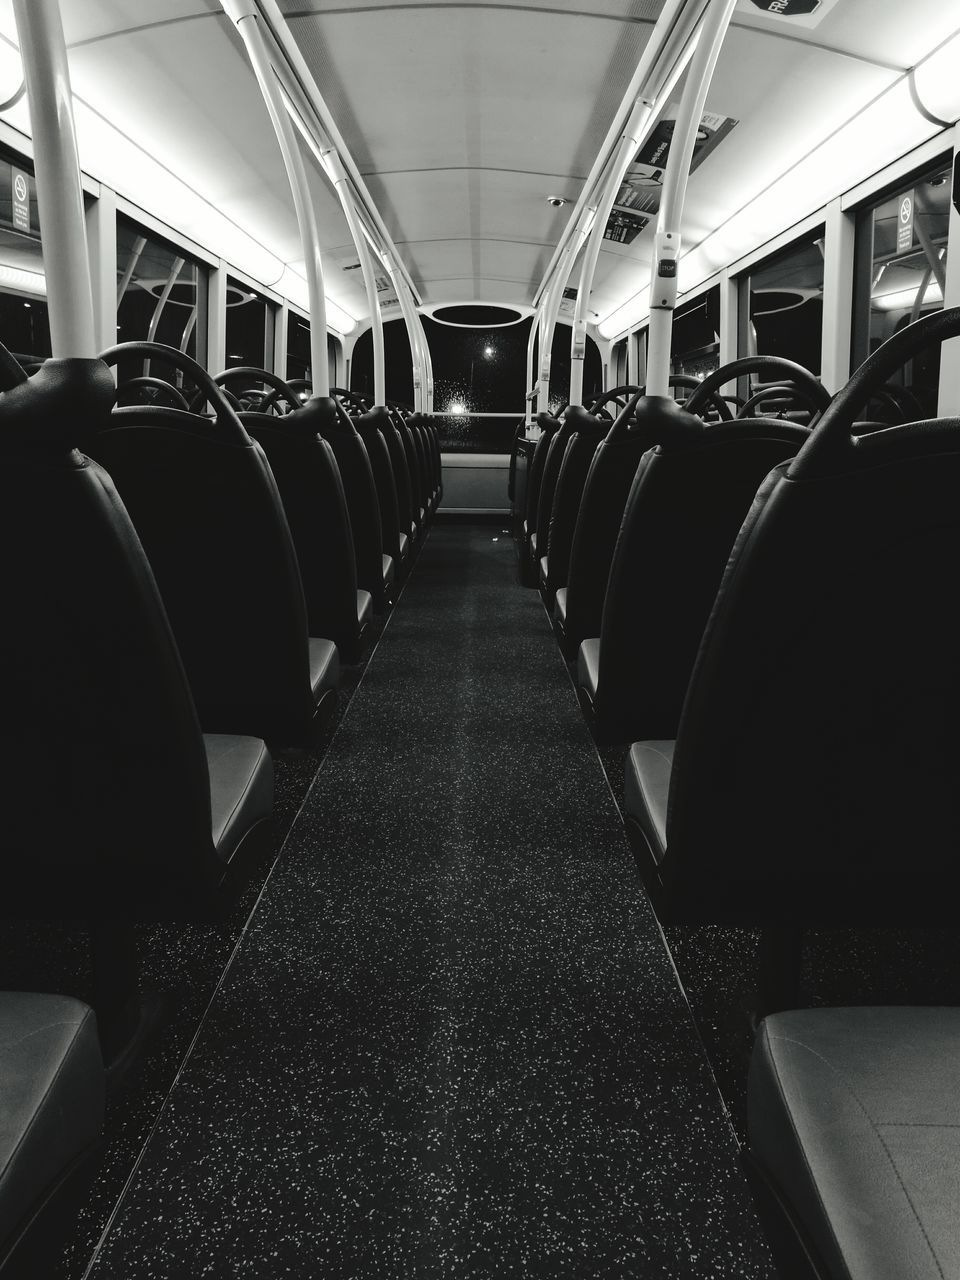 vehicle interior, in a row, transportation, vehicle seat, public transportation, train - vehicle, illuminated, travel, subway train, indoors, mode of transport, rail transportation, no people, commuter train, day